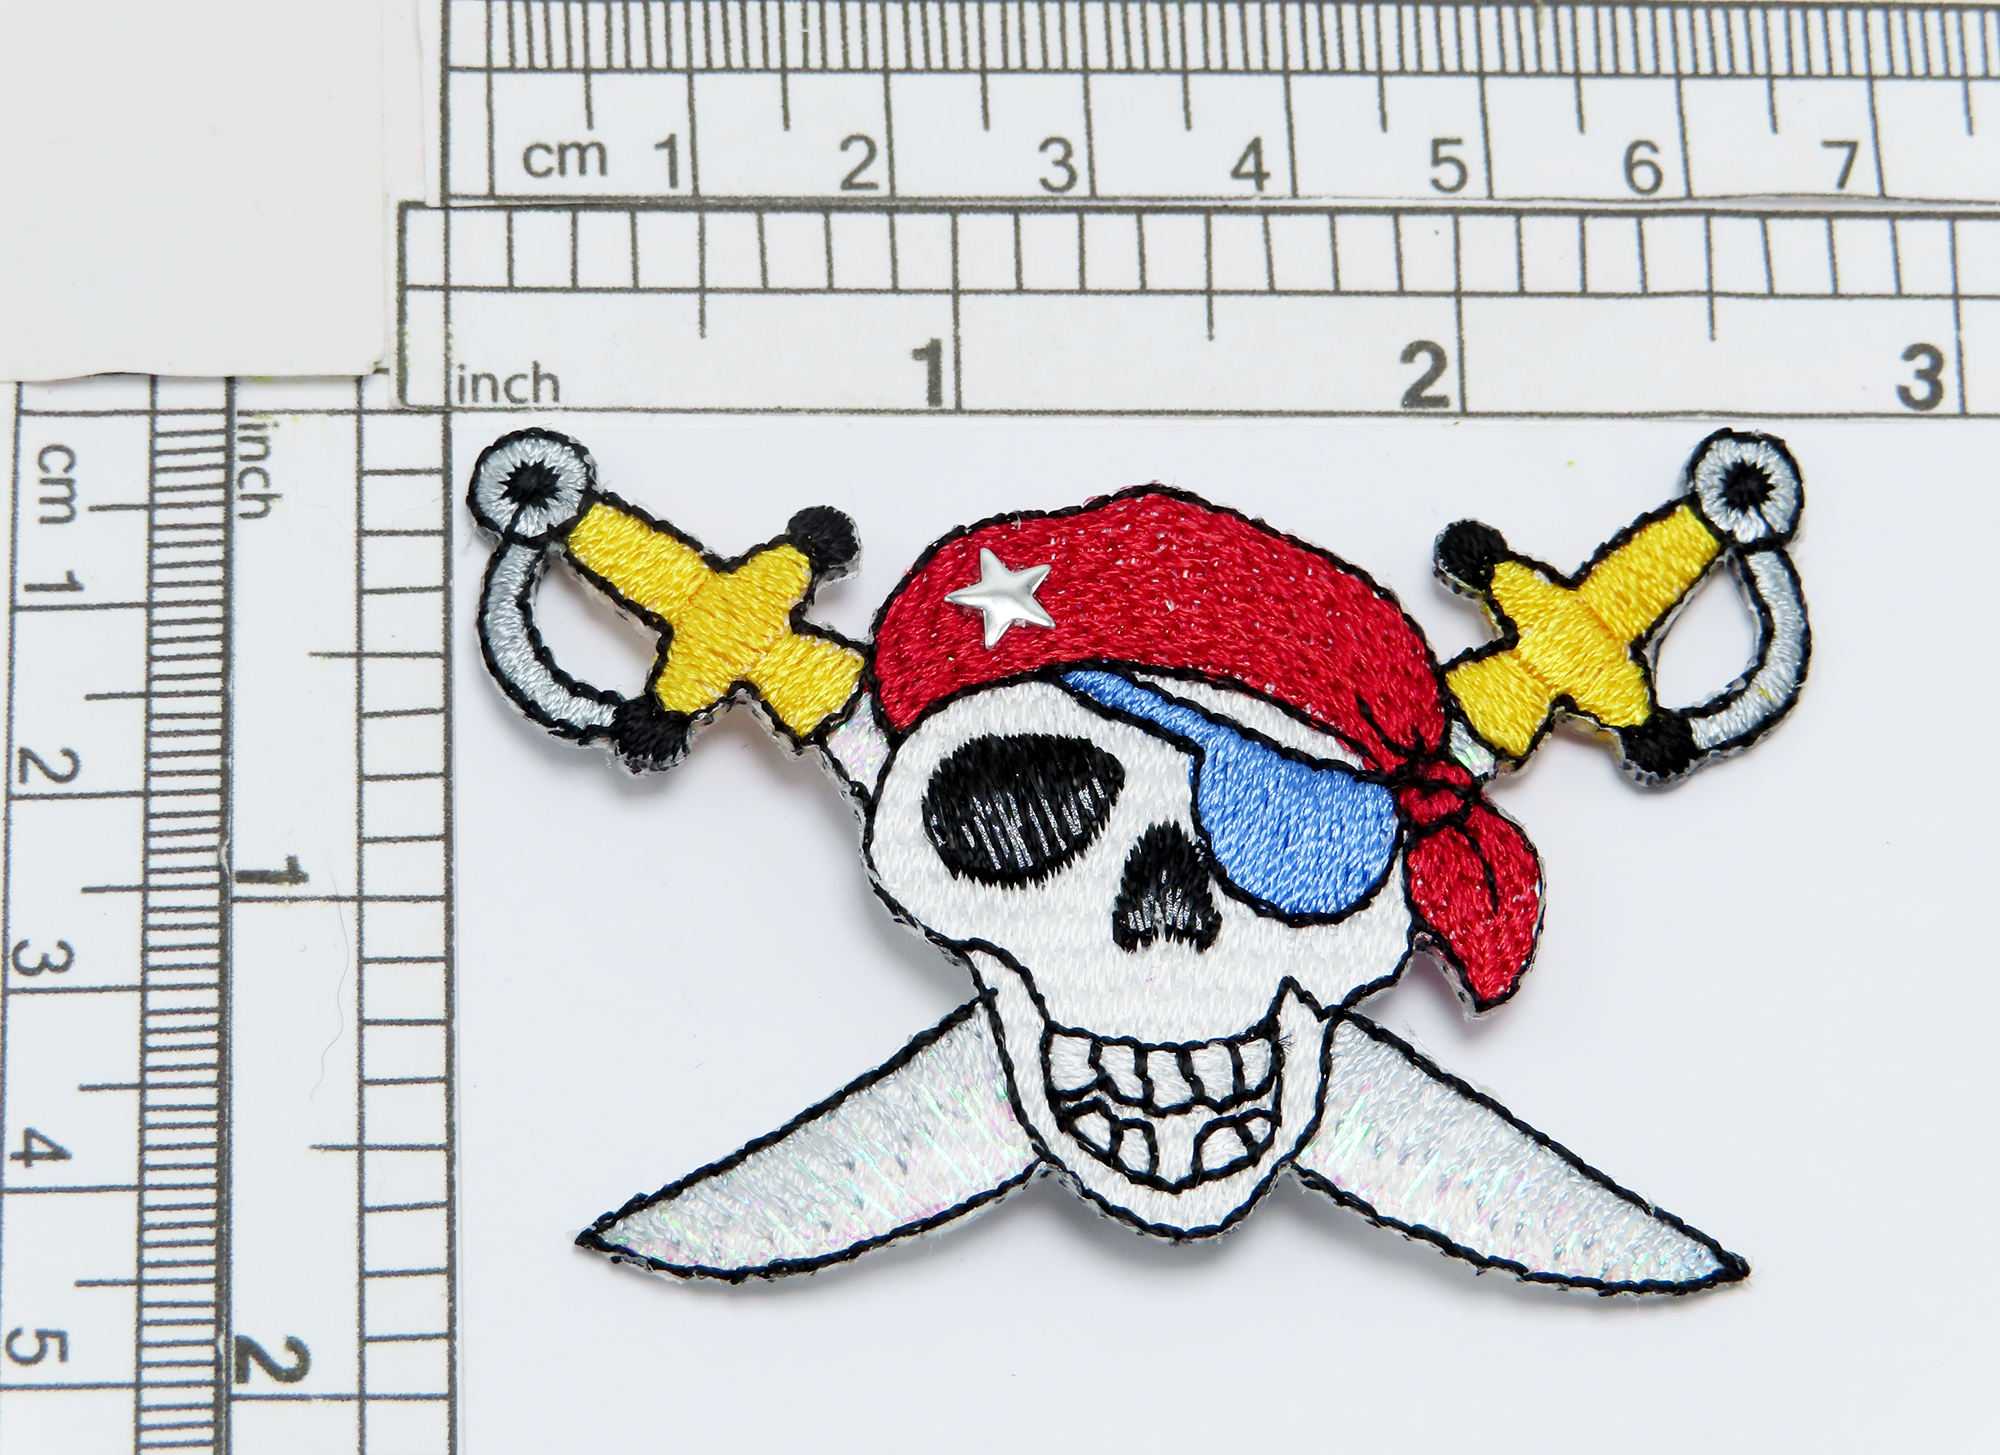 """Buccaneer Cross Swords Iron on Applique  Fully Embroidered   Measures 2 3/4"""" across x 1 3/4"""" high"""